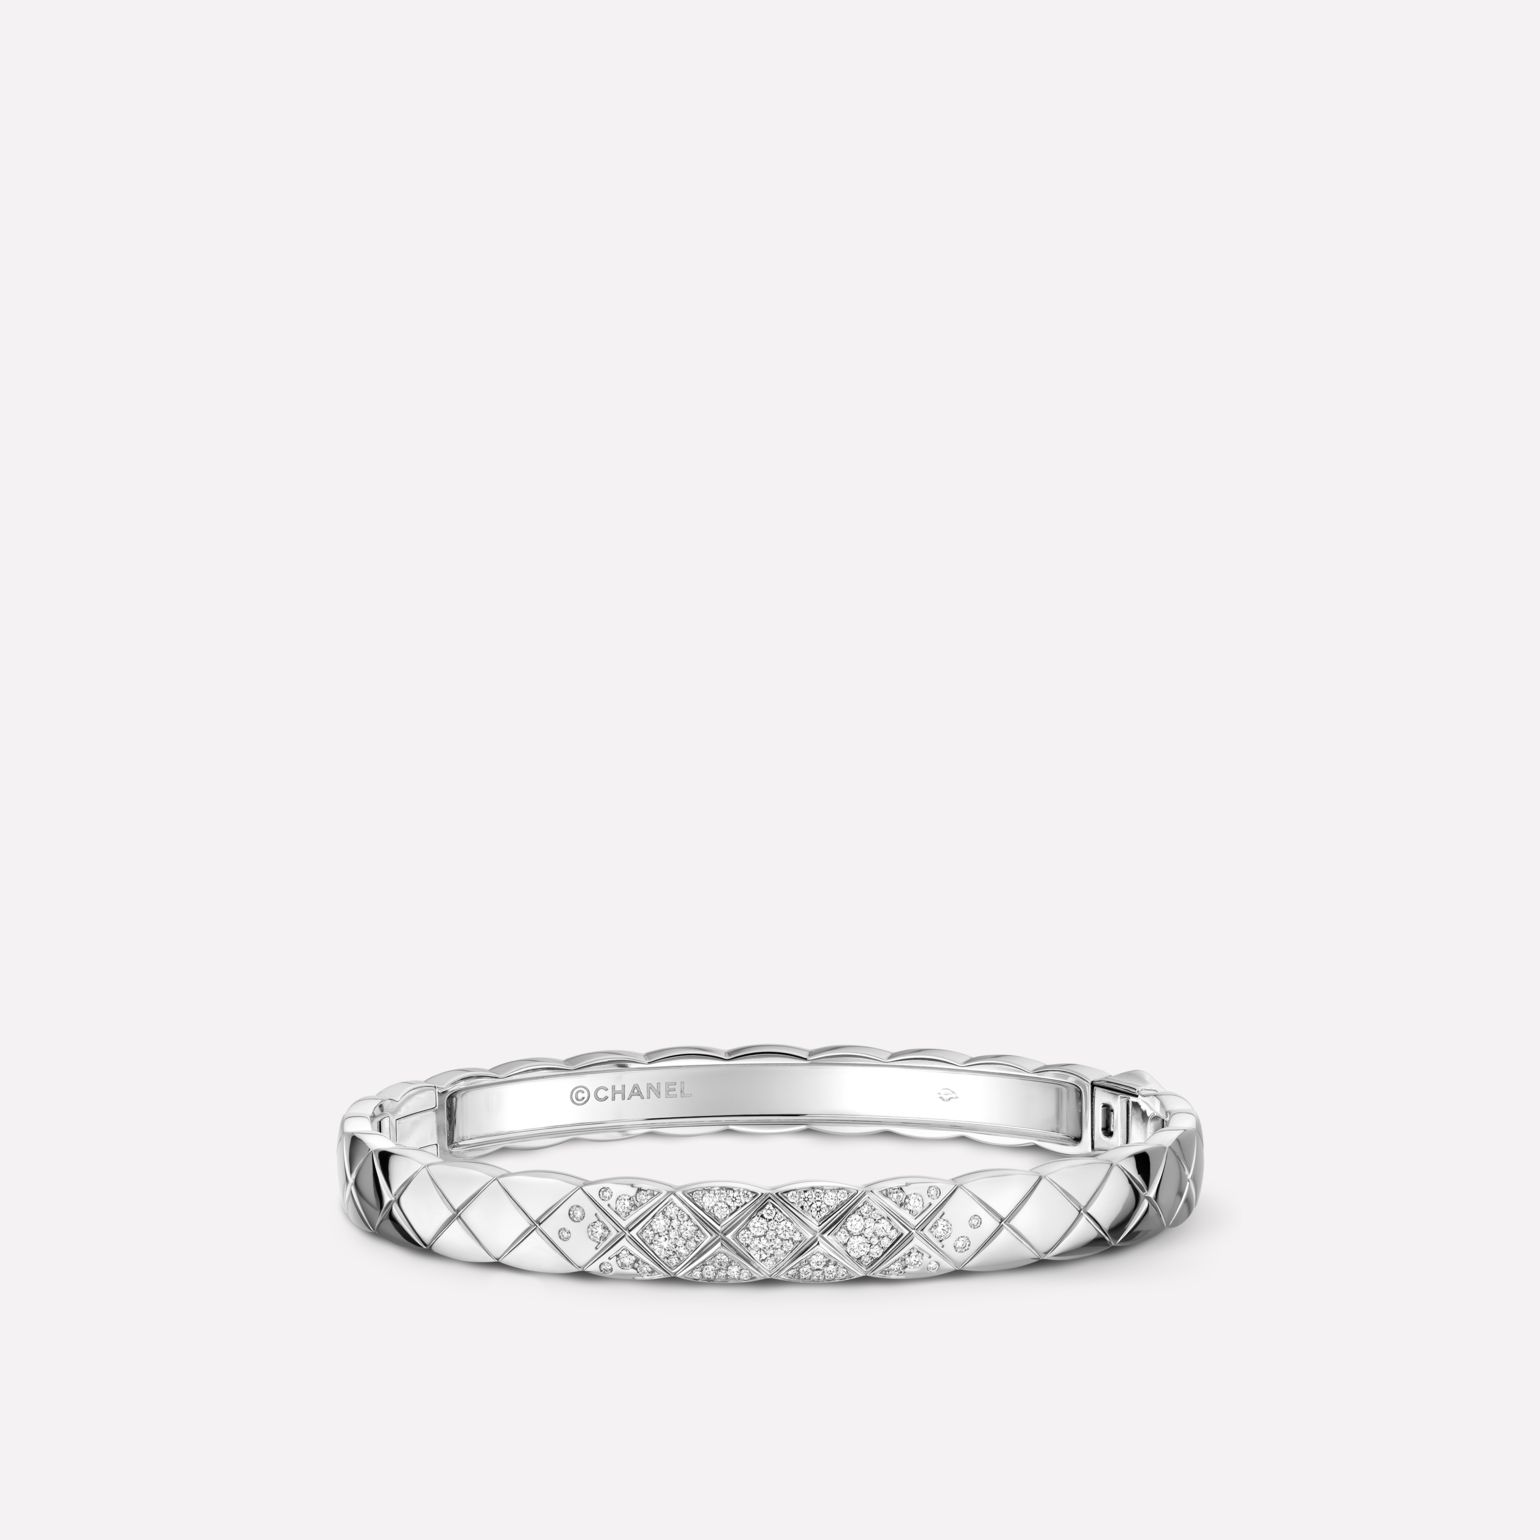 Coco Crush Bracelet Quilted motif bangle in 18K white gold and diamonds